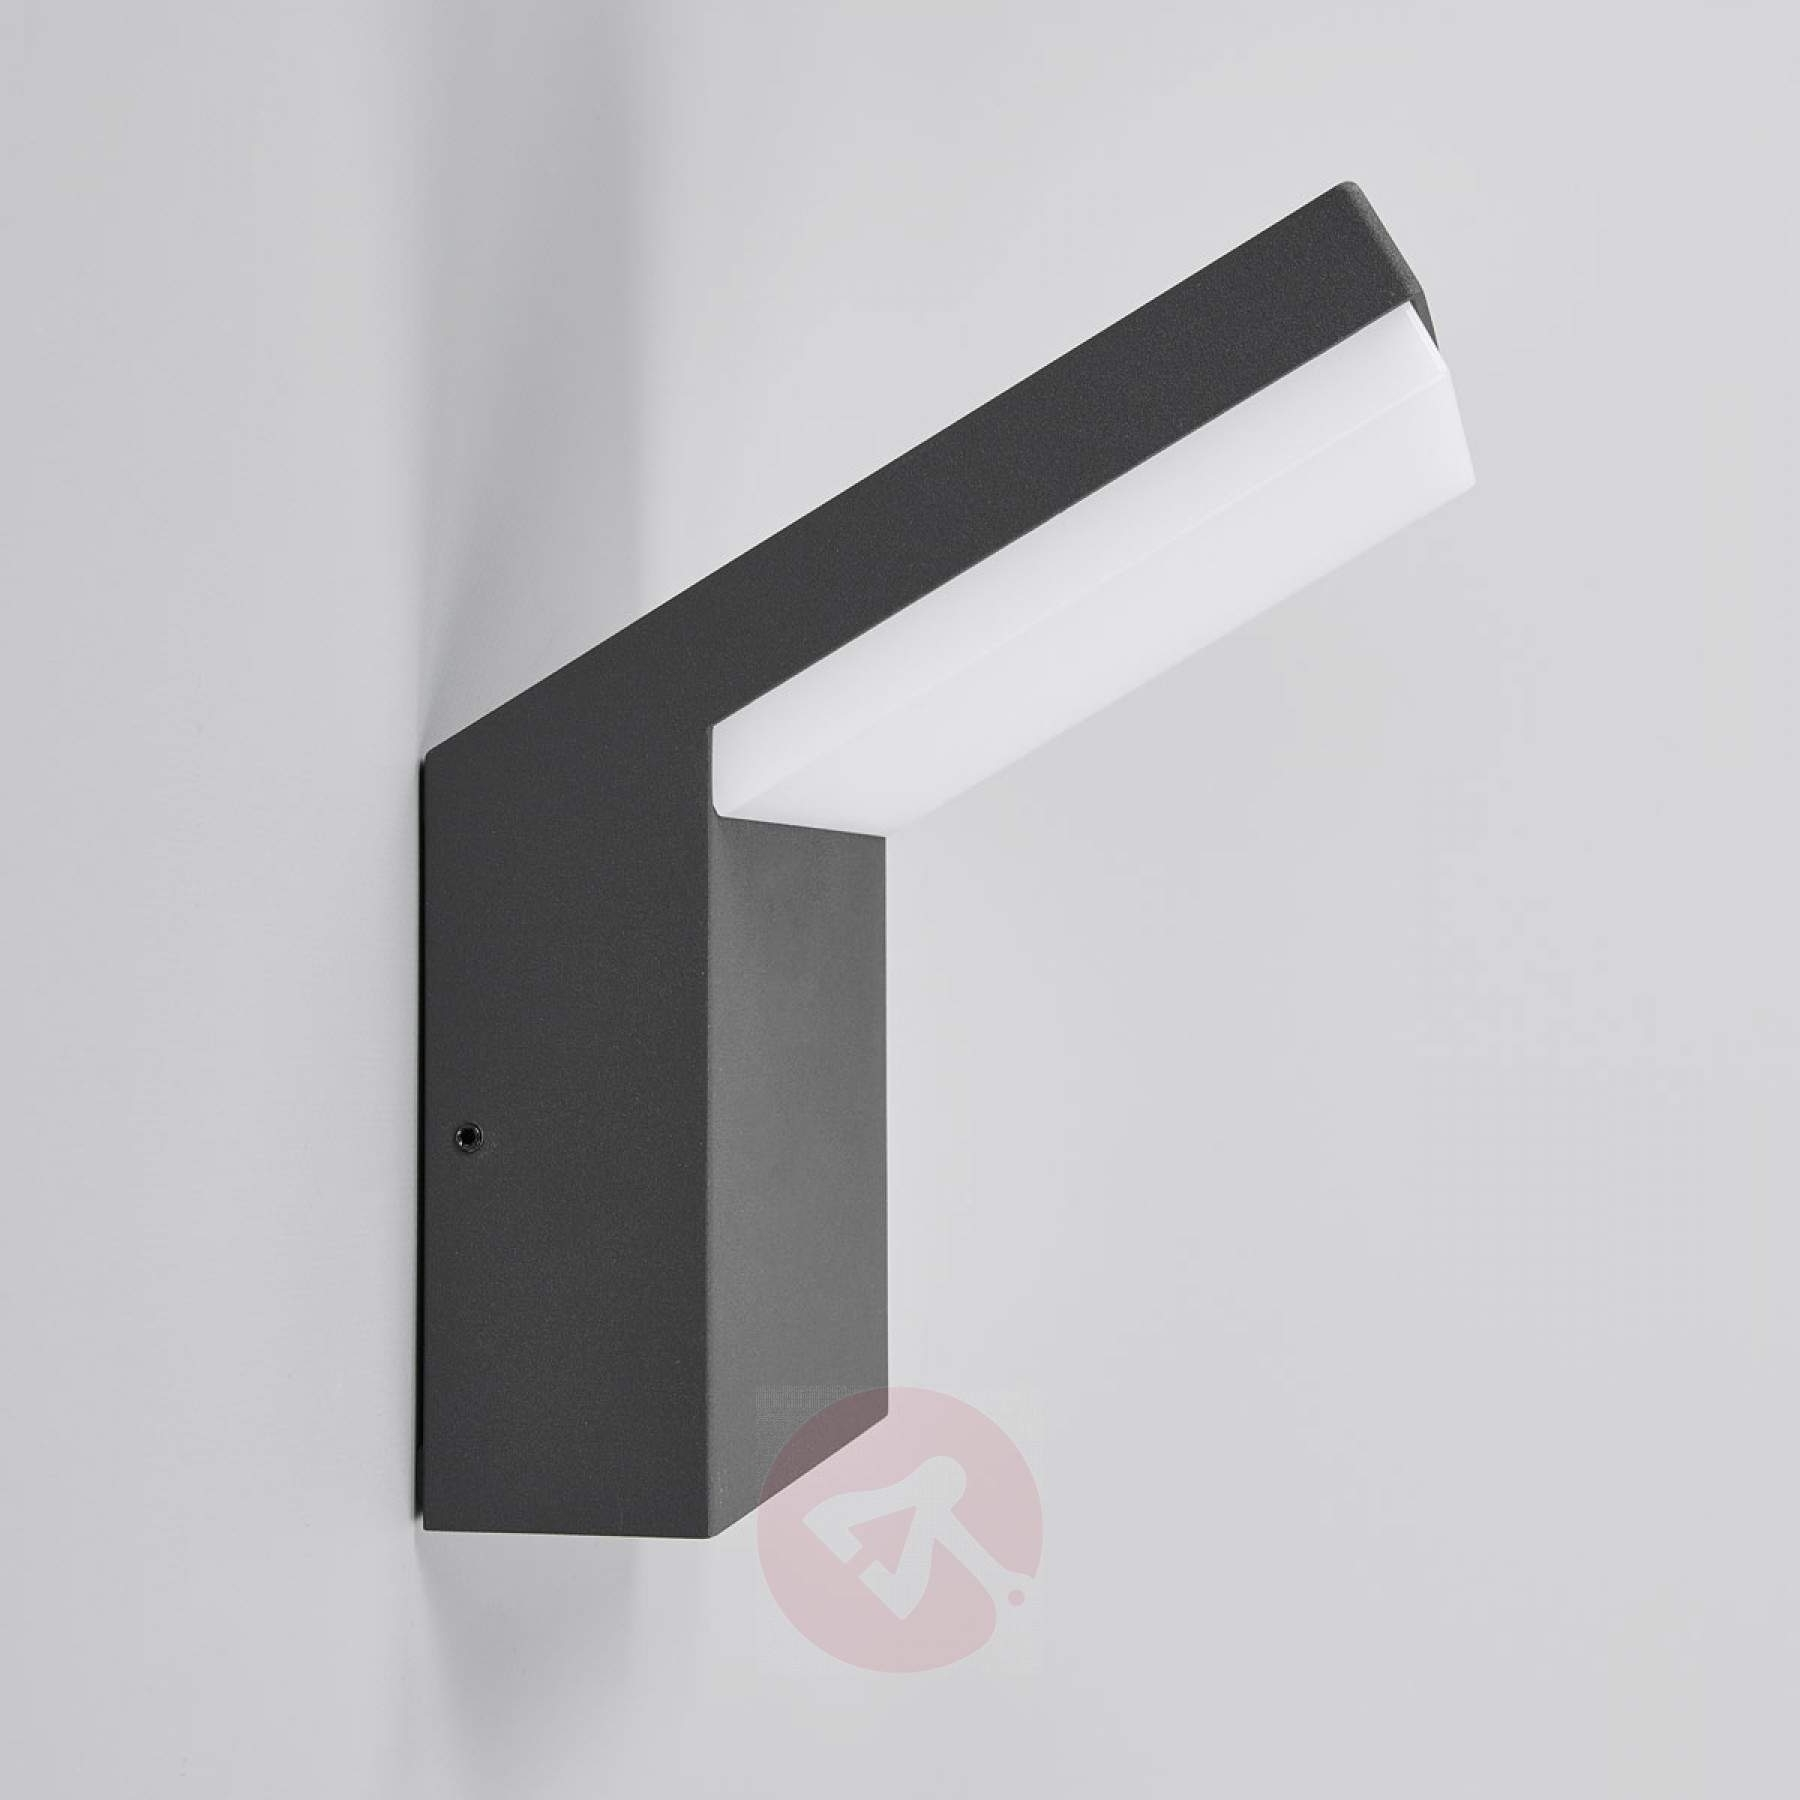 Famous Downlighting Led Outdoor Wall Lamp Yolena (View 6 of 20)